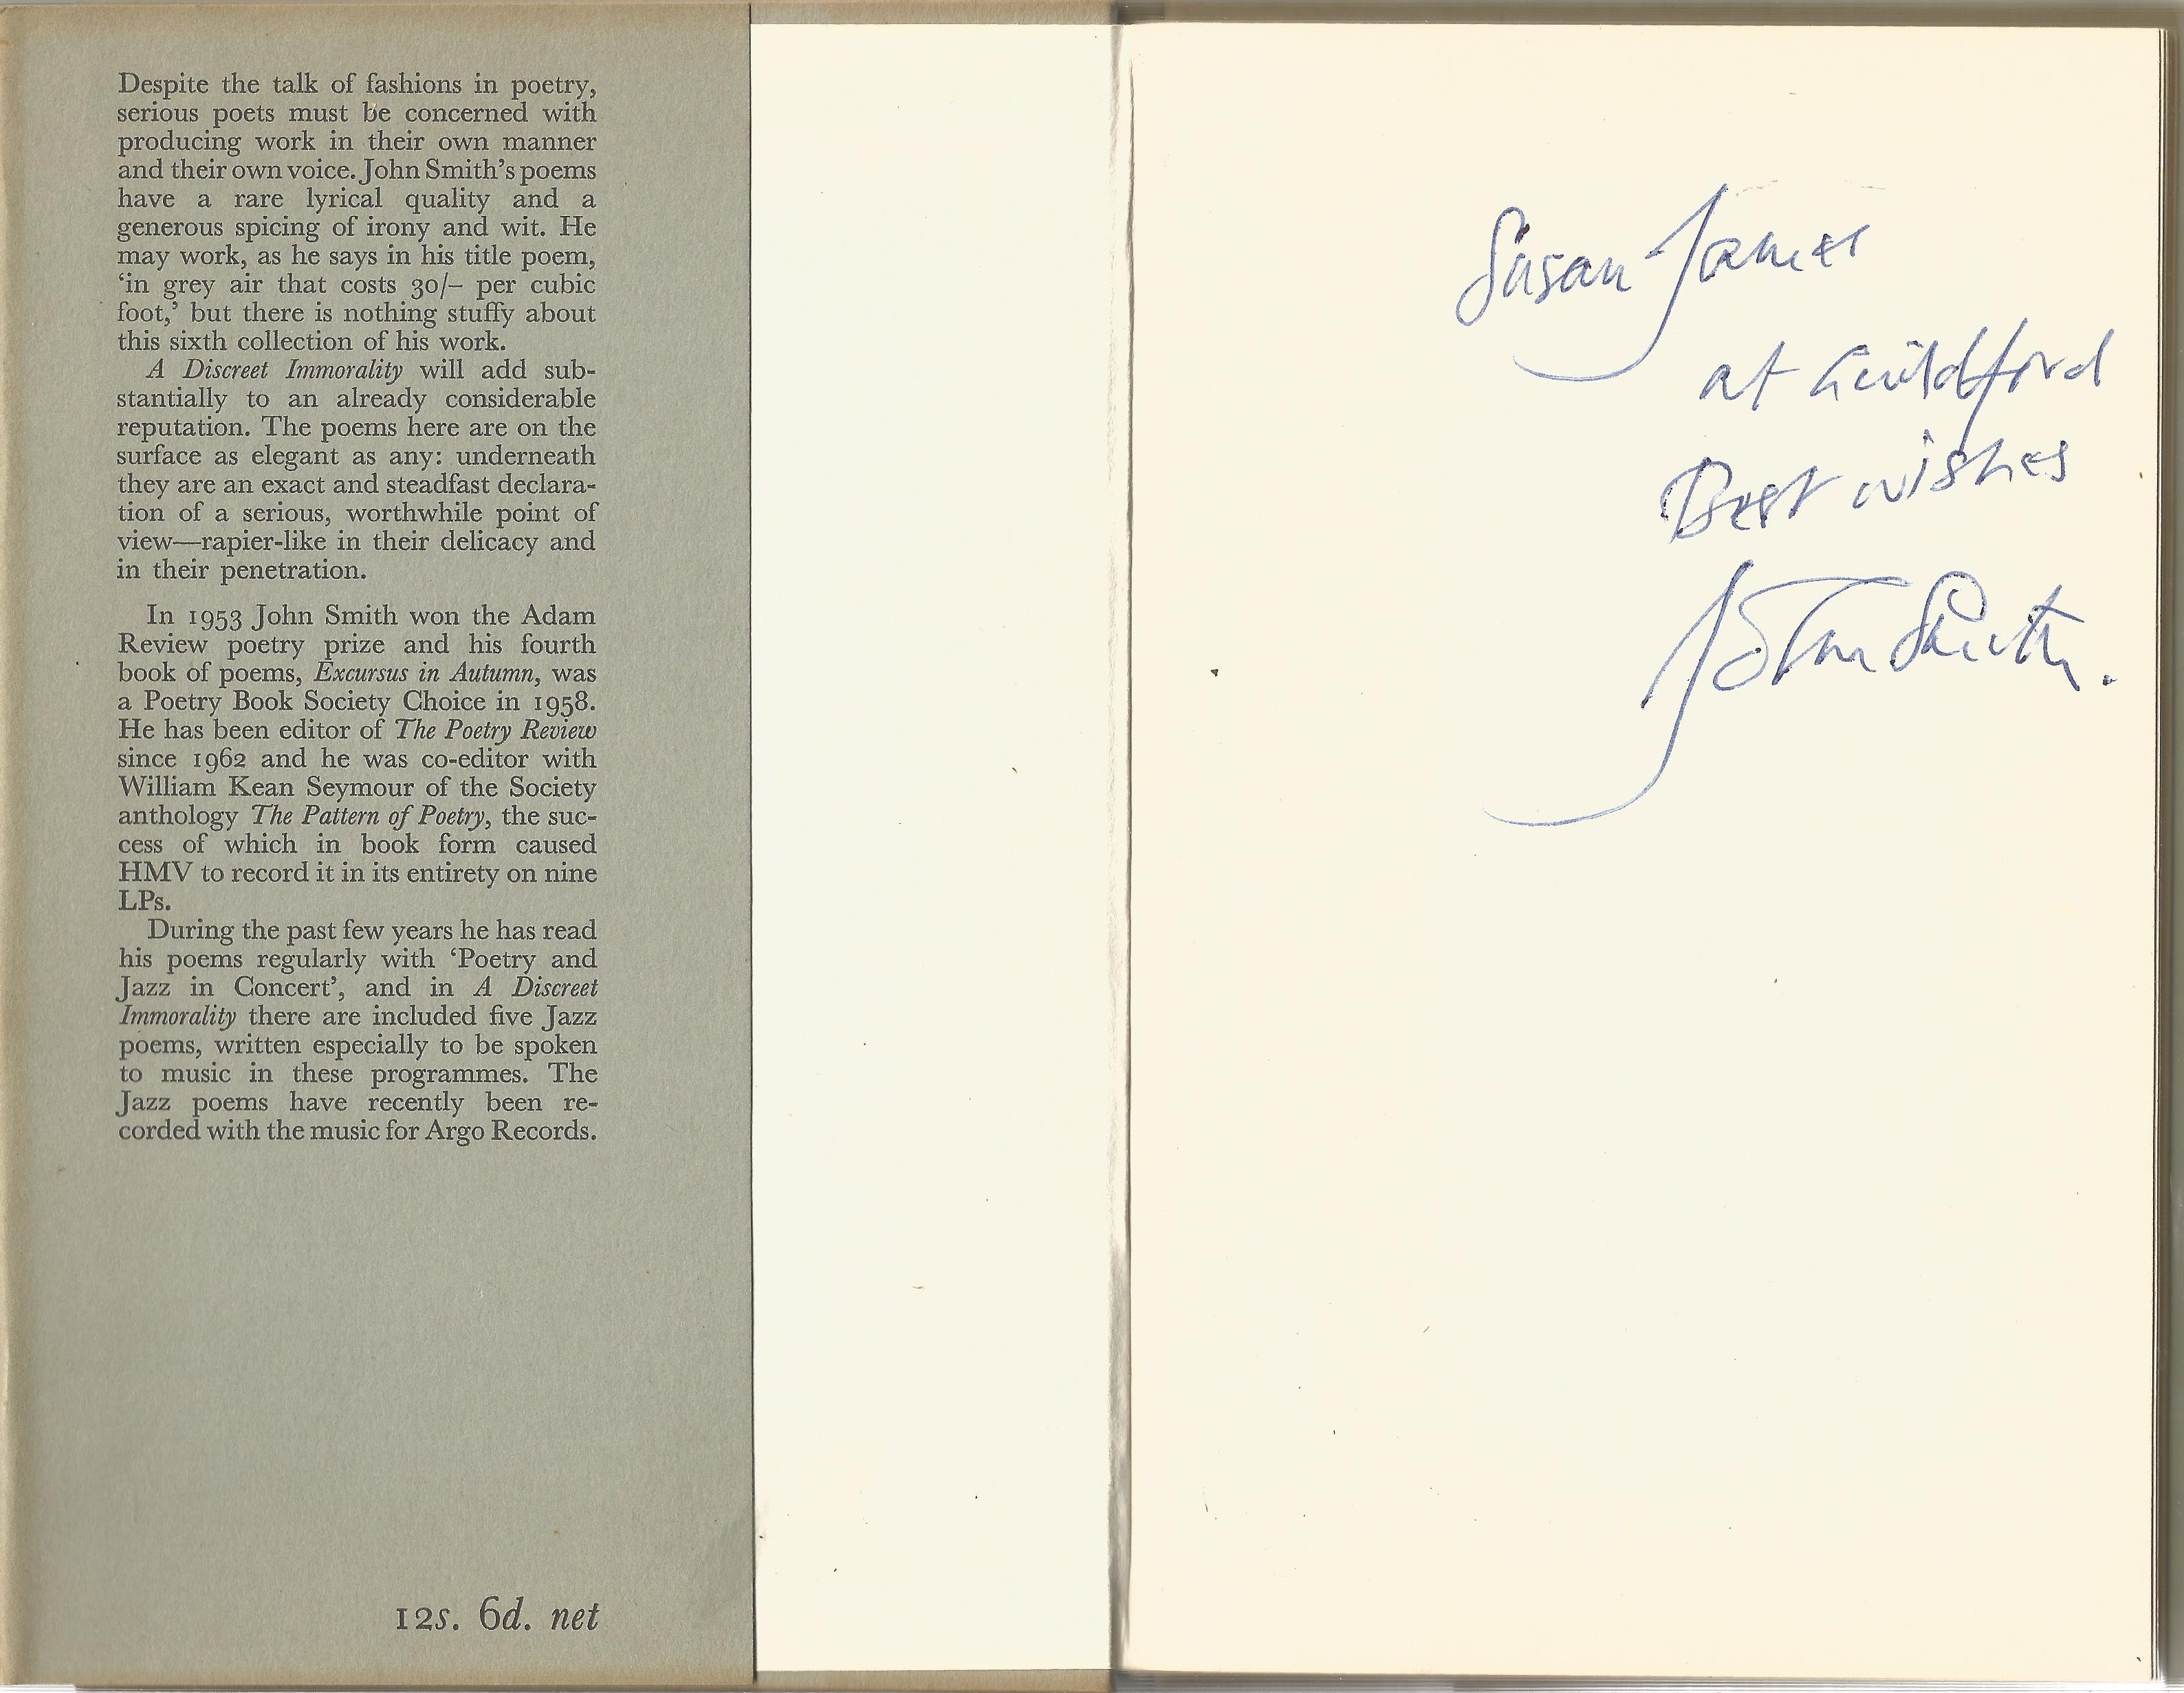 John Smith Hardback Book A Discreet Immortality 1965 signed by the Author on the First Page some - Image 2 of 2